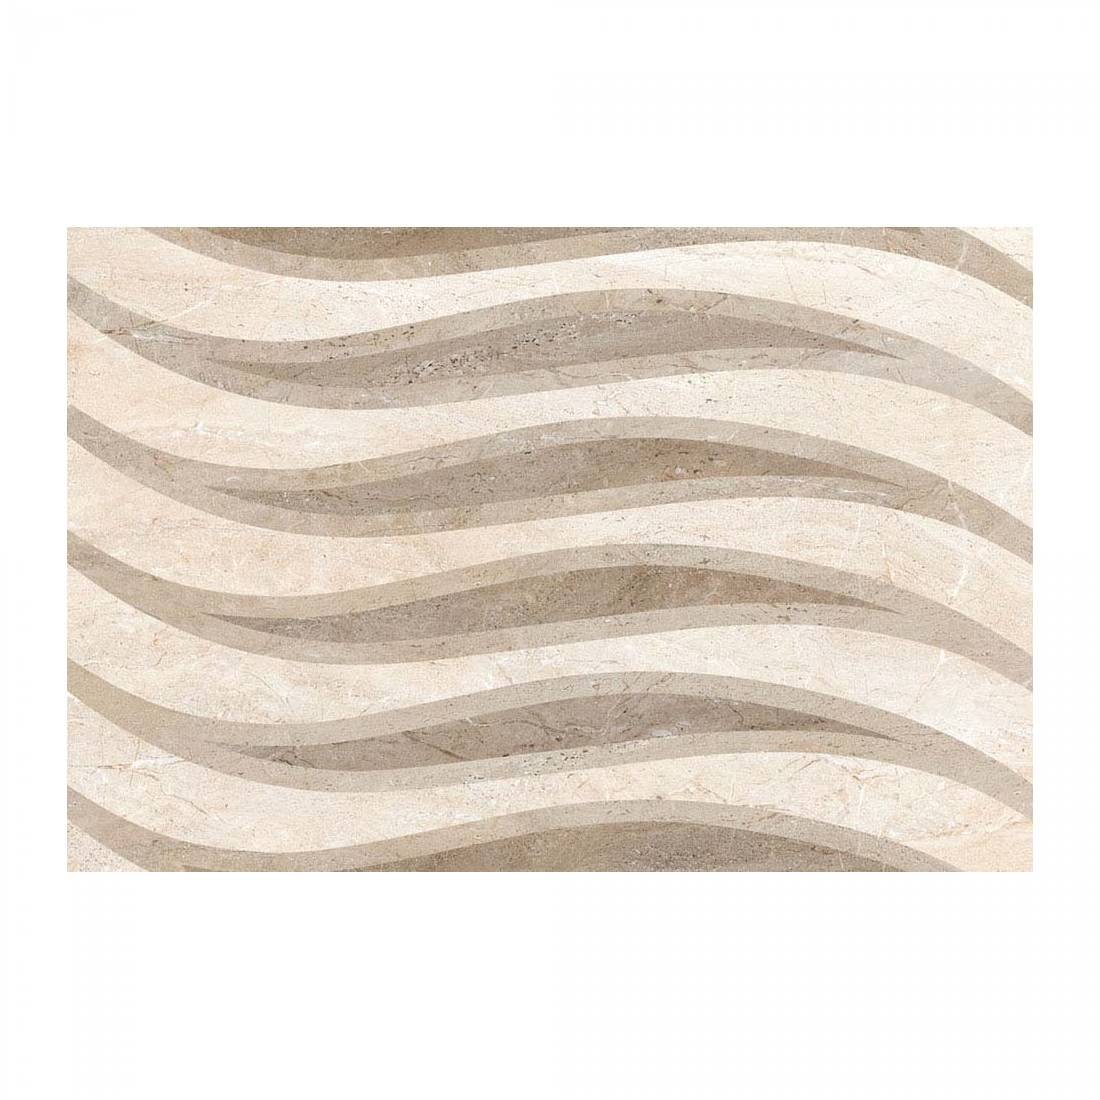 Montana Decor 30x45 Beige Gloss 1